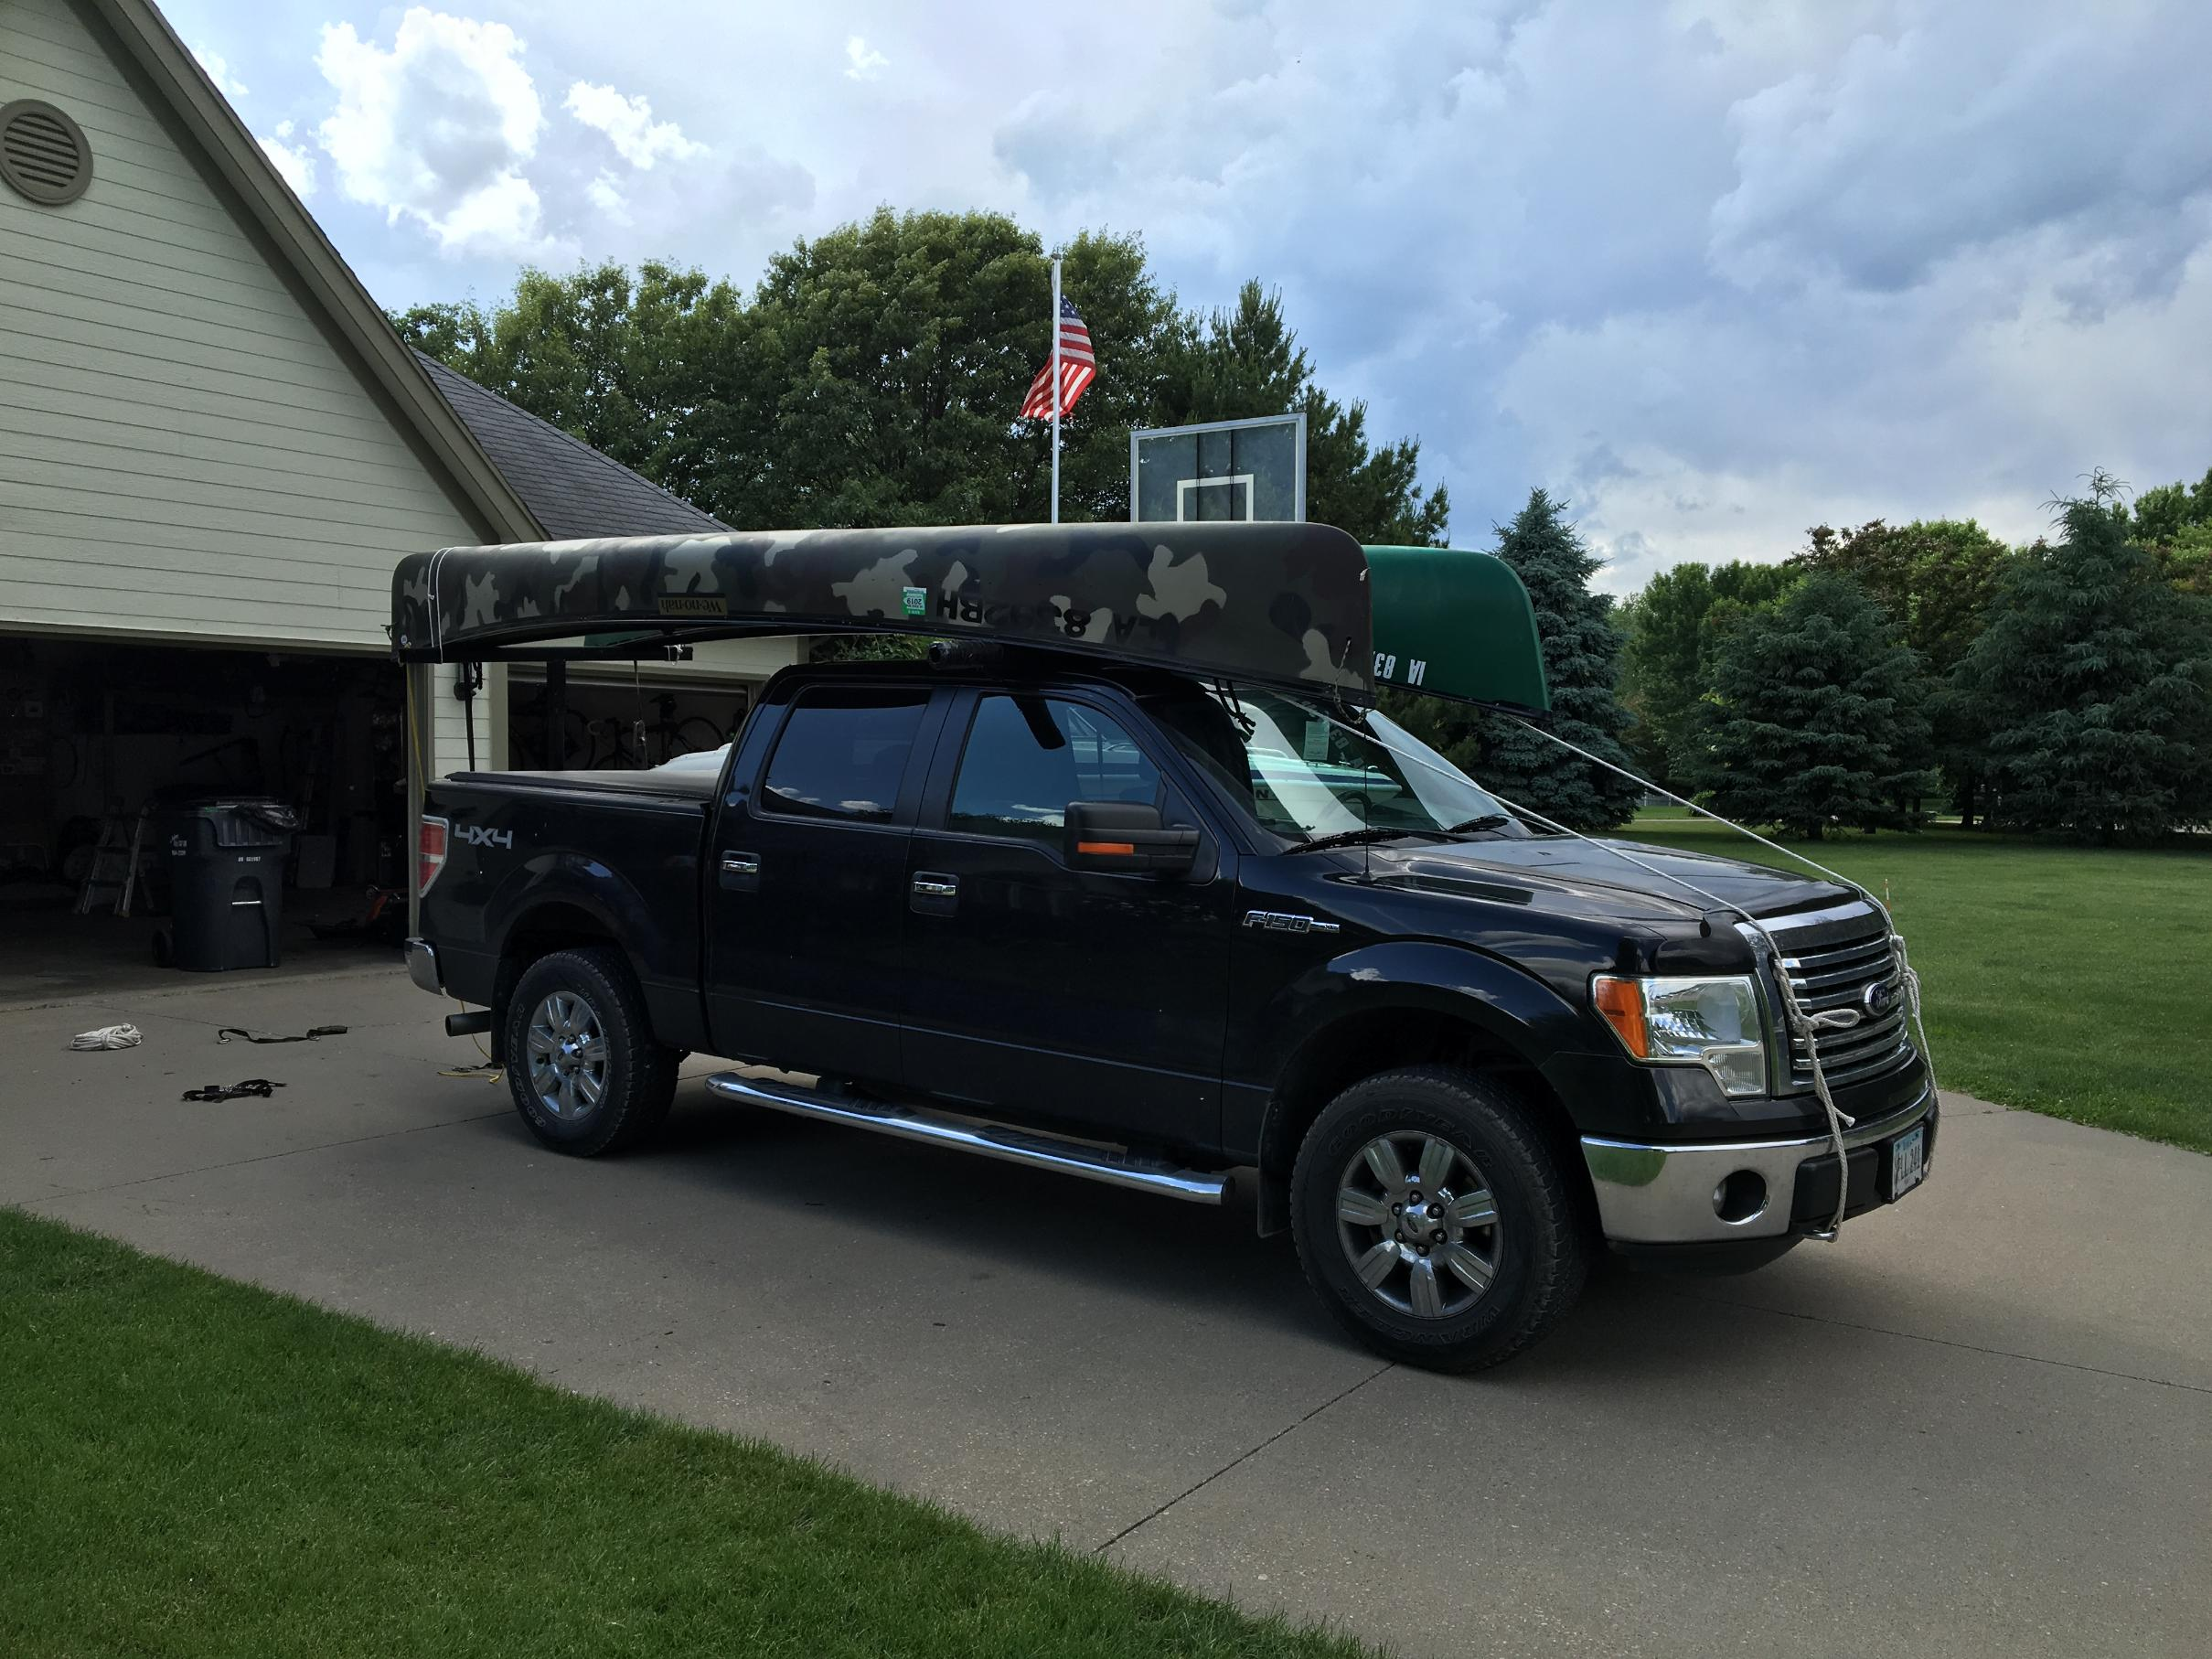 f150 bed rack boundary waters gear forum